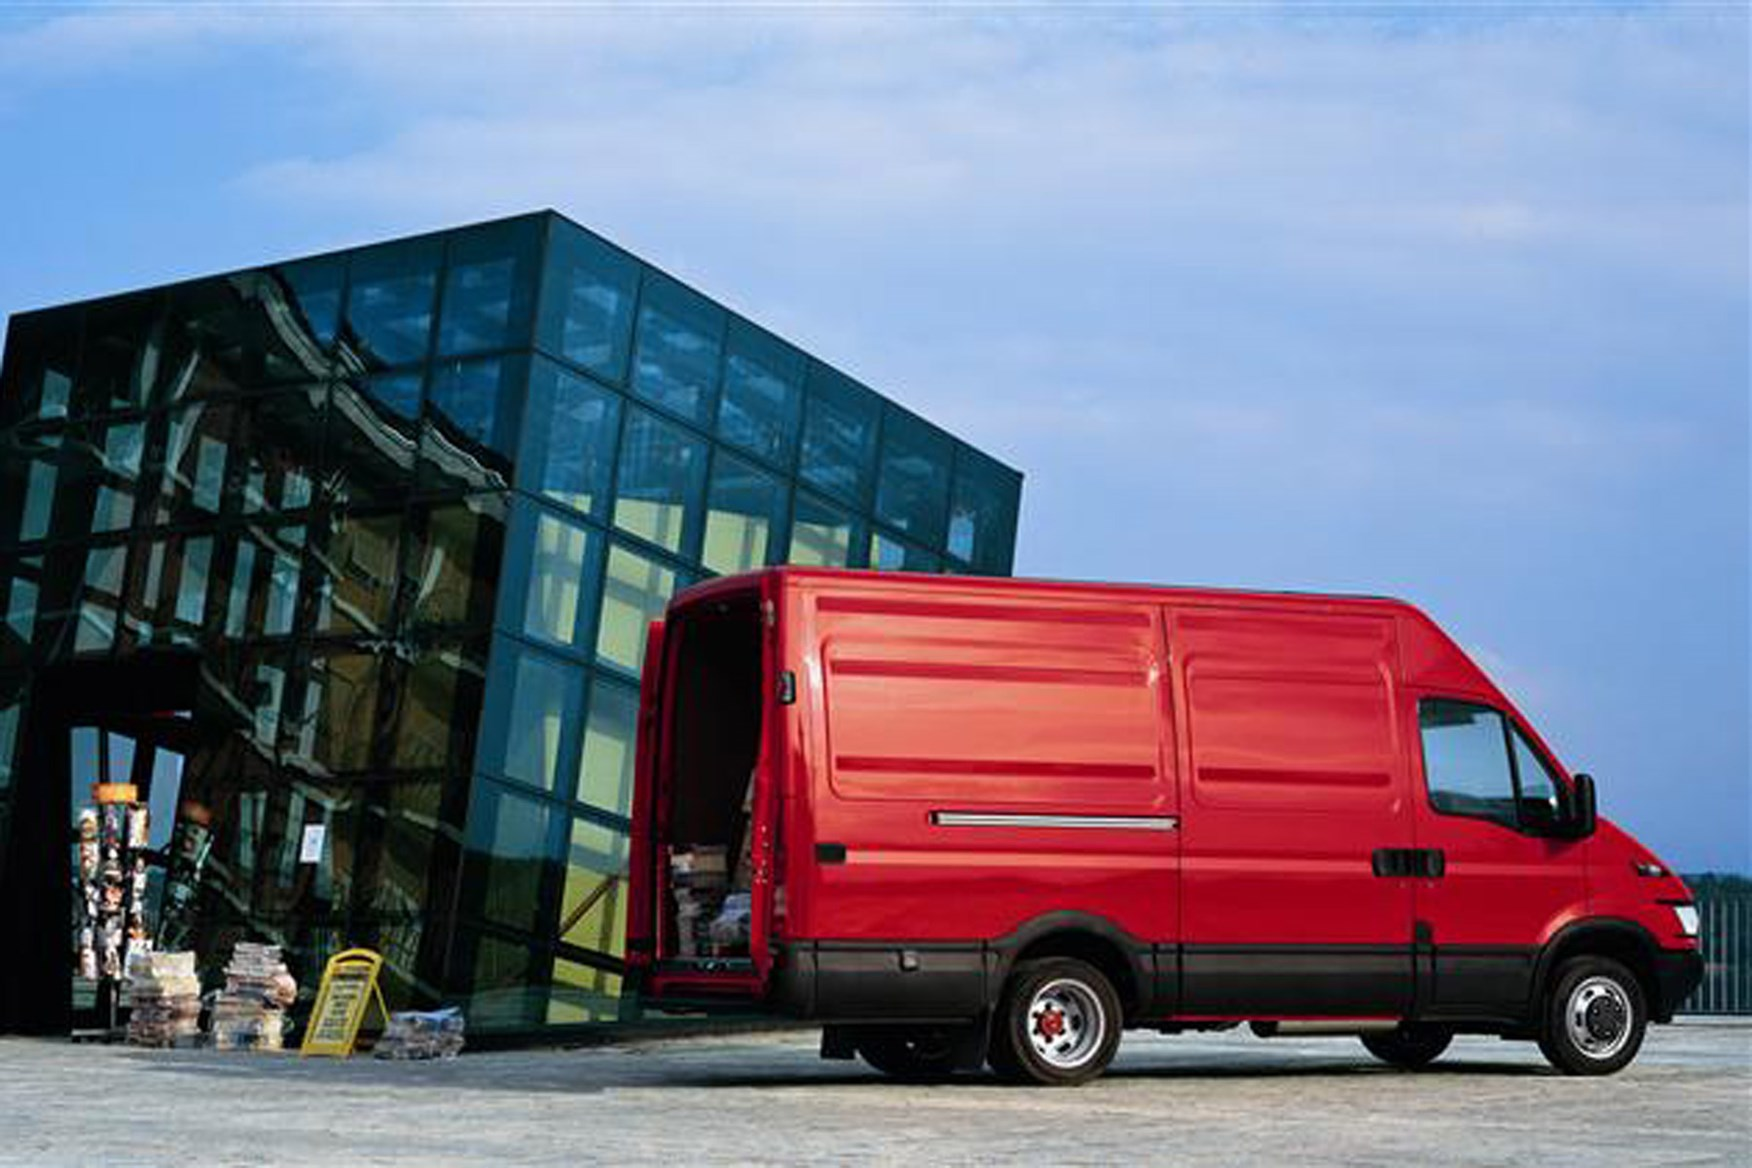 Iveco Daily review on Parkers Vans - dimensions and load area